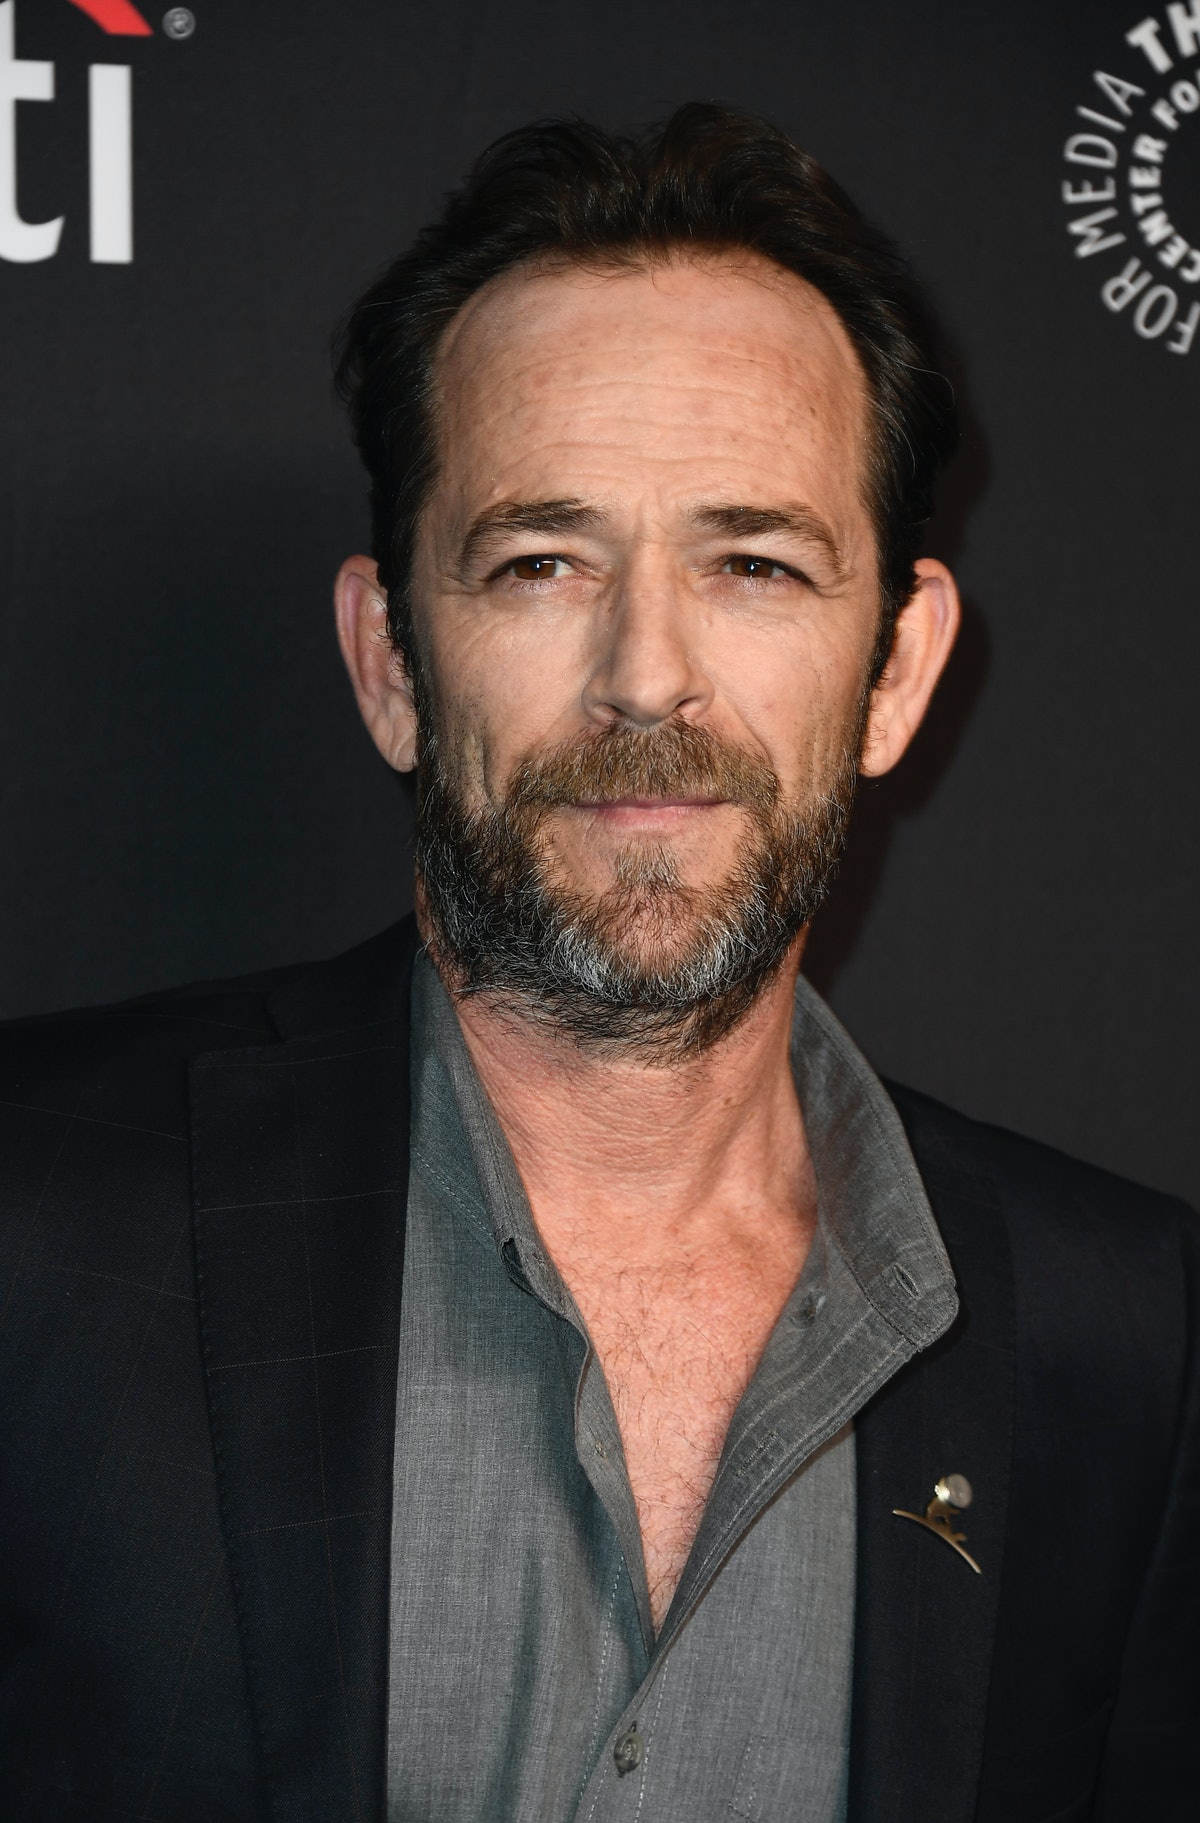 Luke Perry's Last Role Was A Dream Come True, According To 'Once Upon A Time In Hollywood' Producers